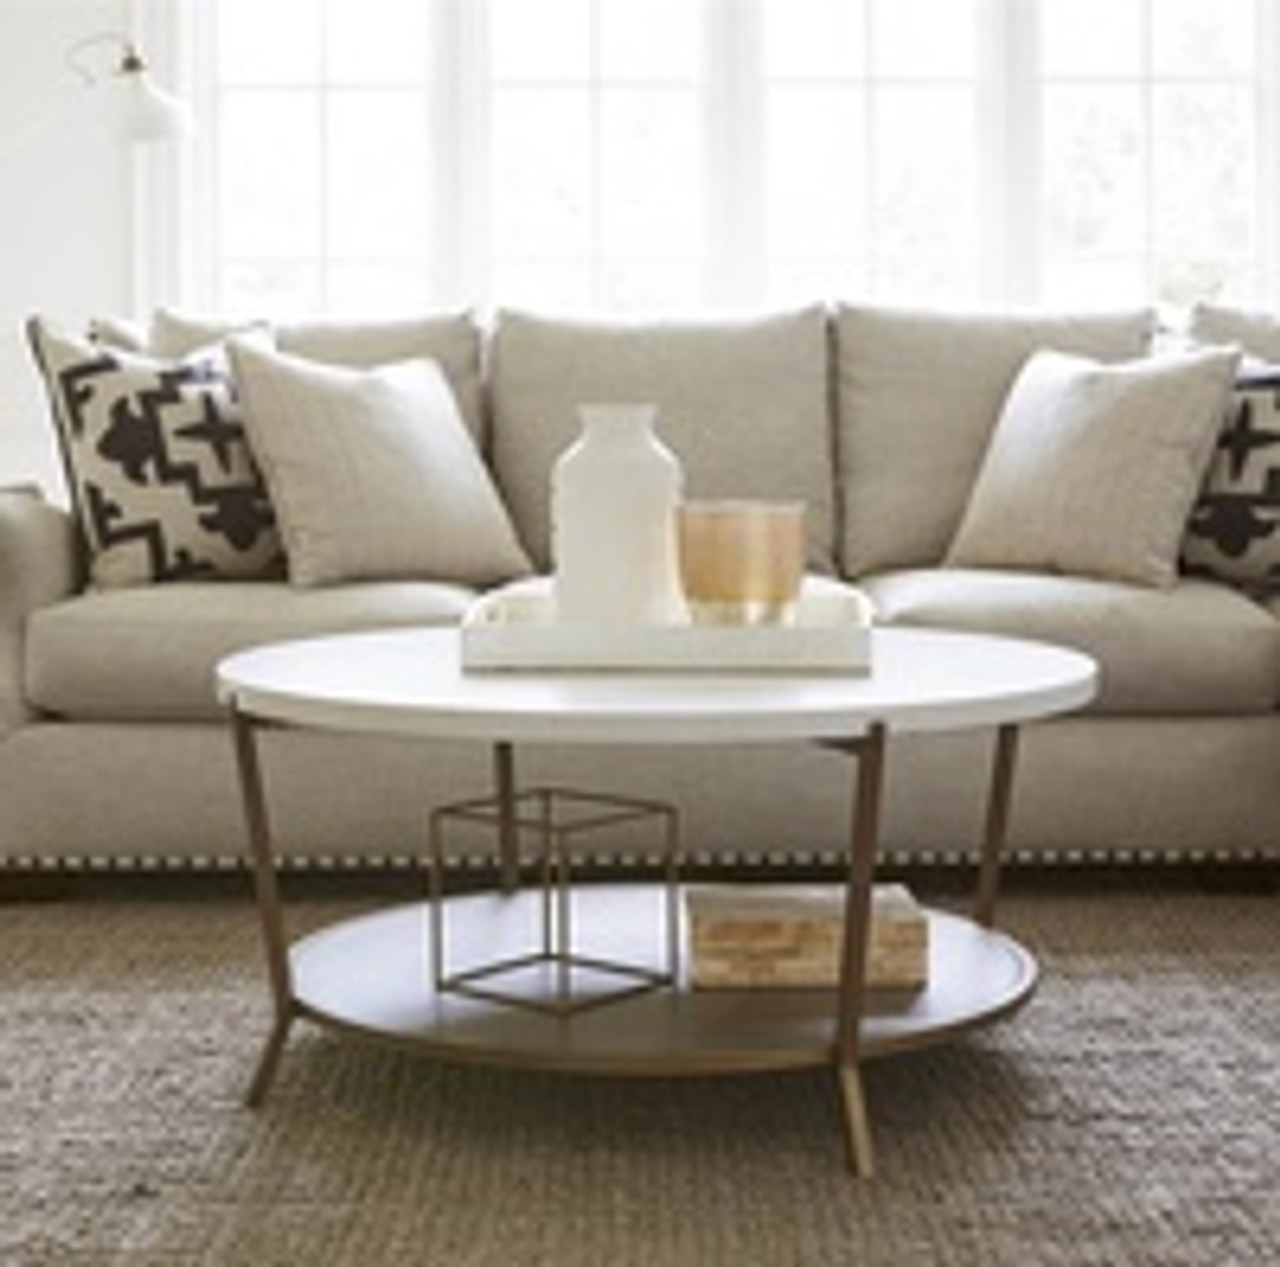 Things to Consider When Choosing a Coffee Table